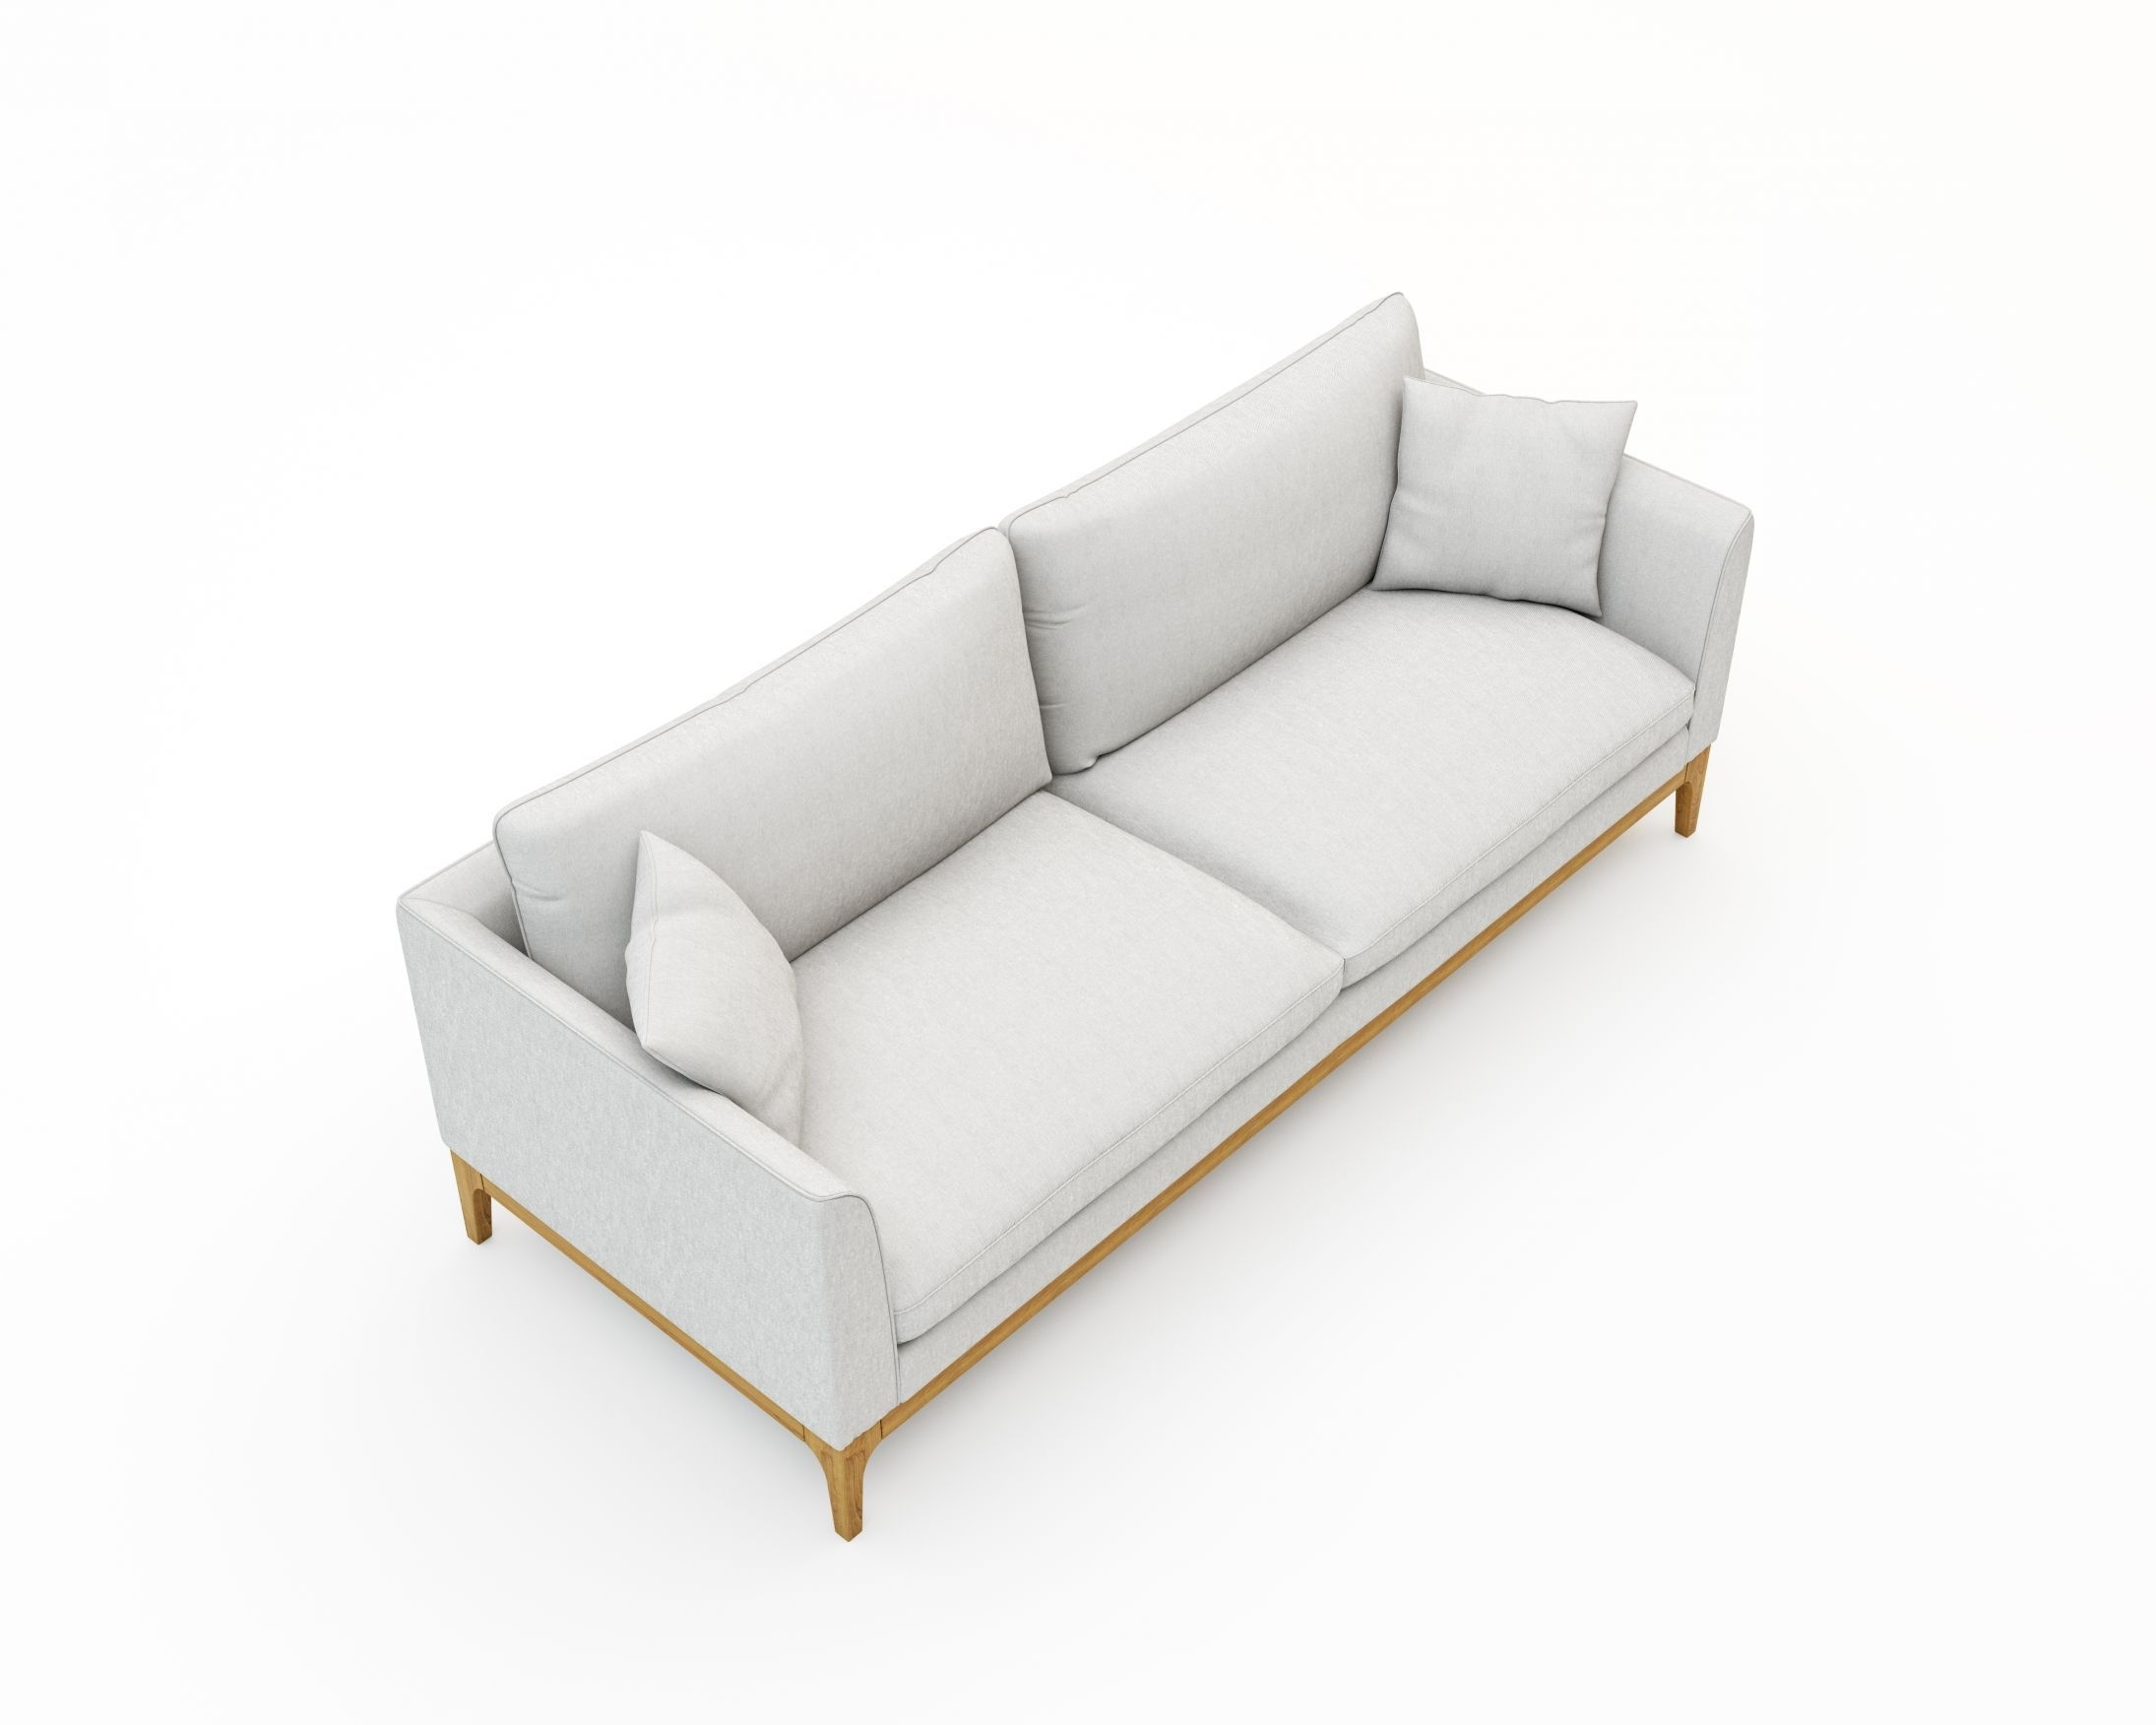 Loren Sofa | Rove Concepts Kure Mid Century Furniture | Pinterest Regarding Nico Grey Sectionals With Left Facing Storage Chaise (View 9 of 25)